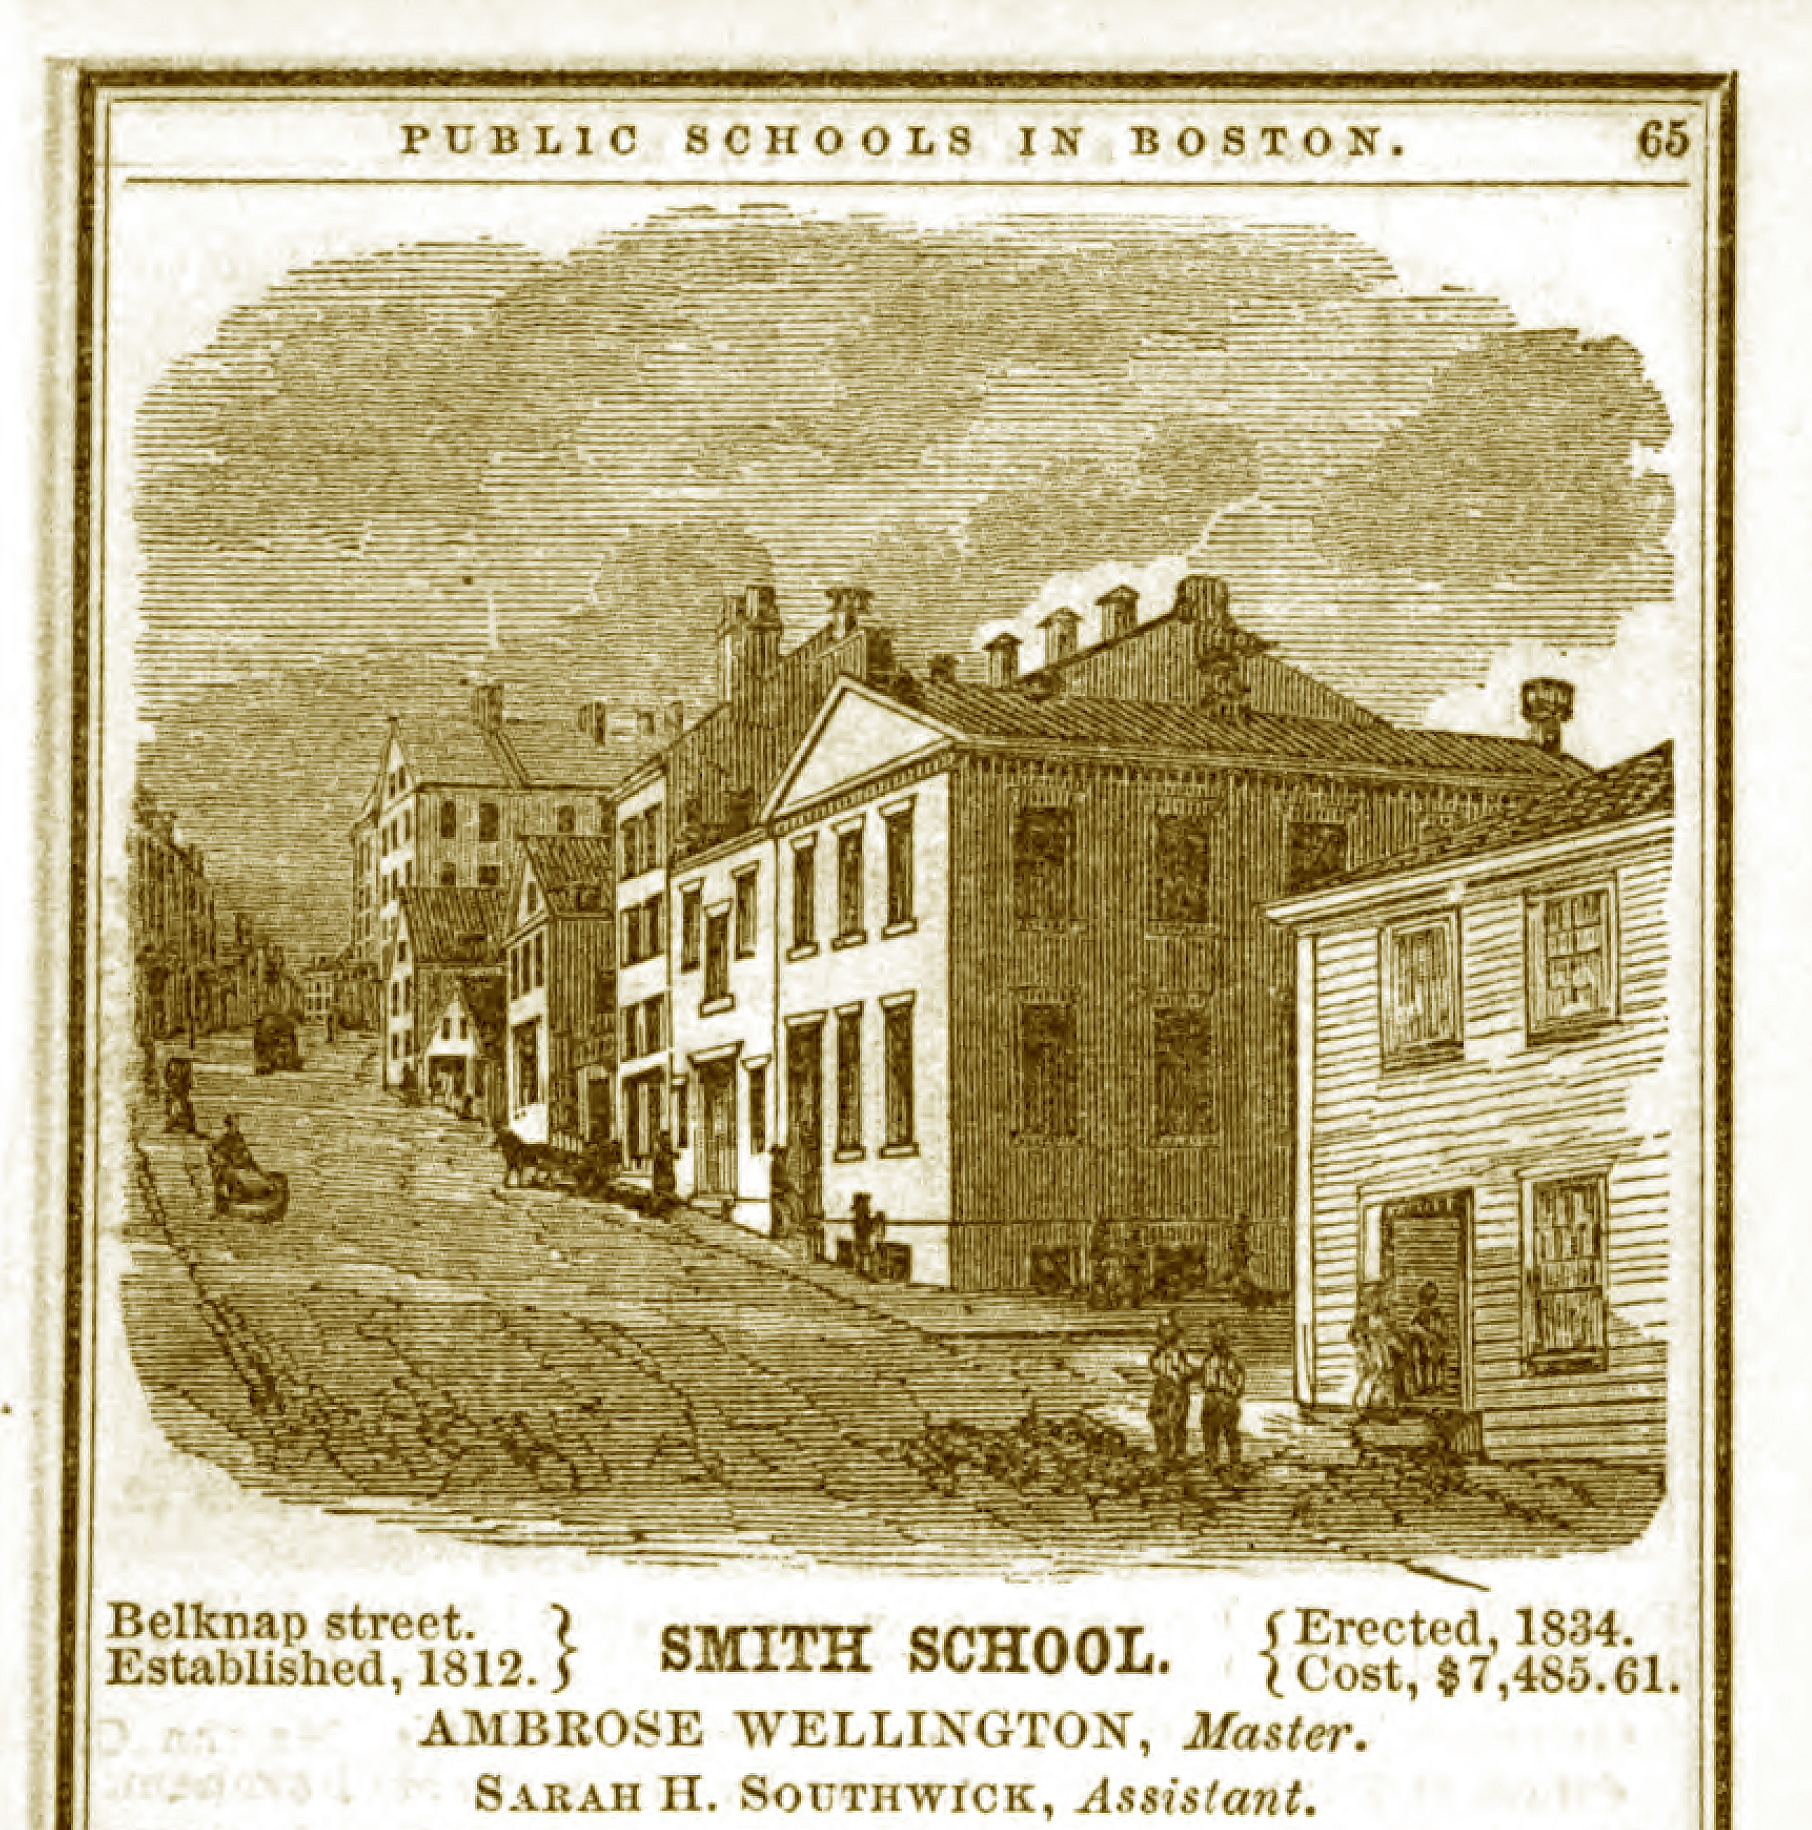 Black and white print of the Abiel Smith School on a hillside with other low lying buildings in a dense nineteenth century urban neighborhood